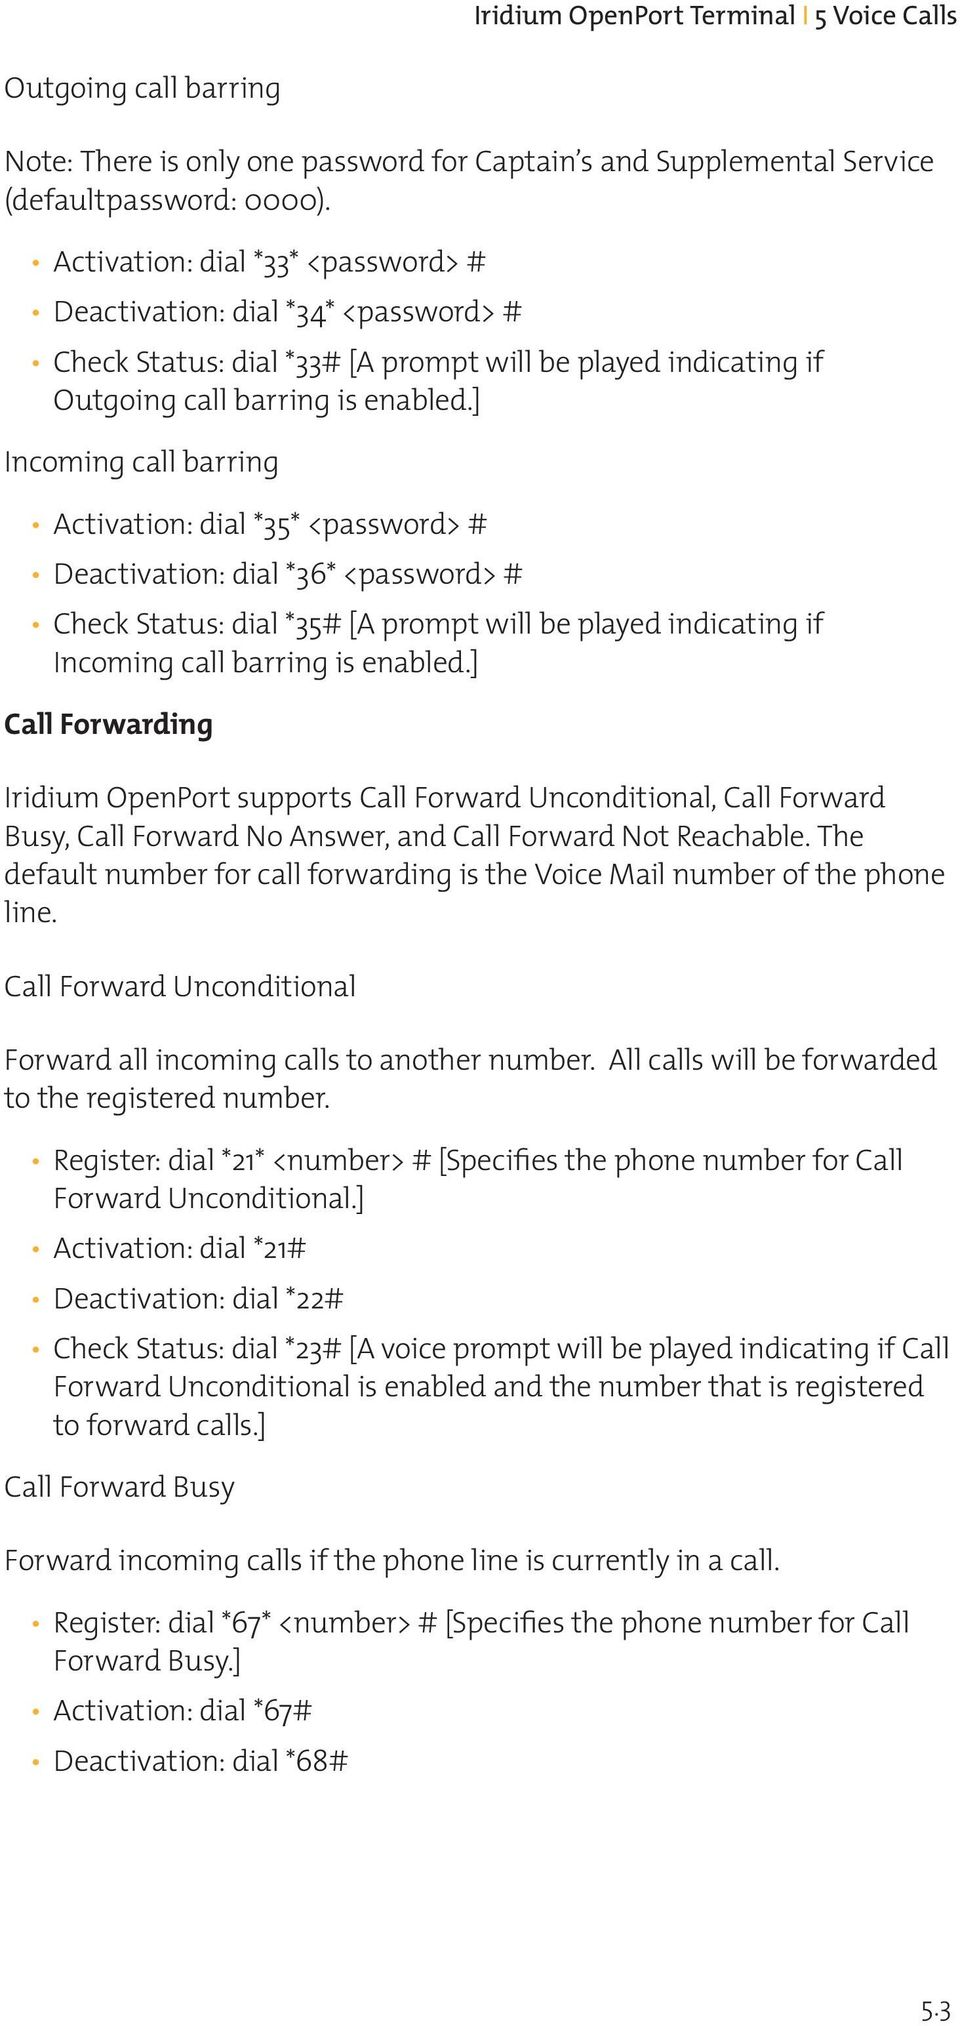 ] Incoming call barring Activation: dial *35* <password> # Deactivation: dial *36* <password> # Check Status: dial *35# [A prompt will be played indicating if Incoming call barring is enabled.